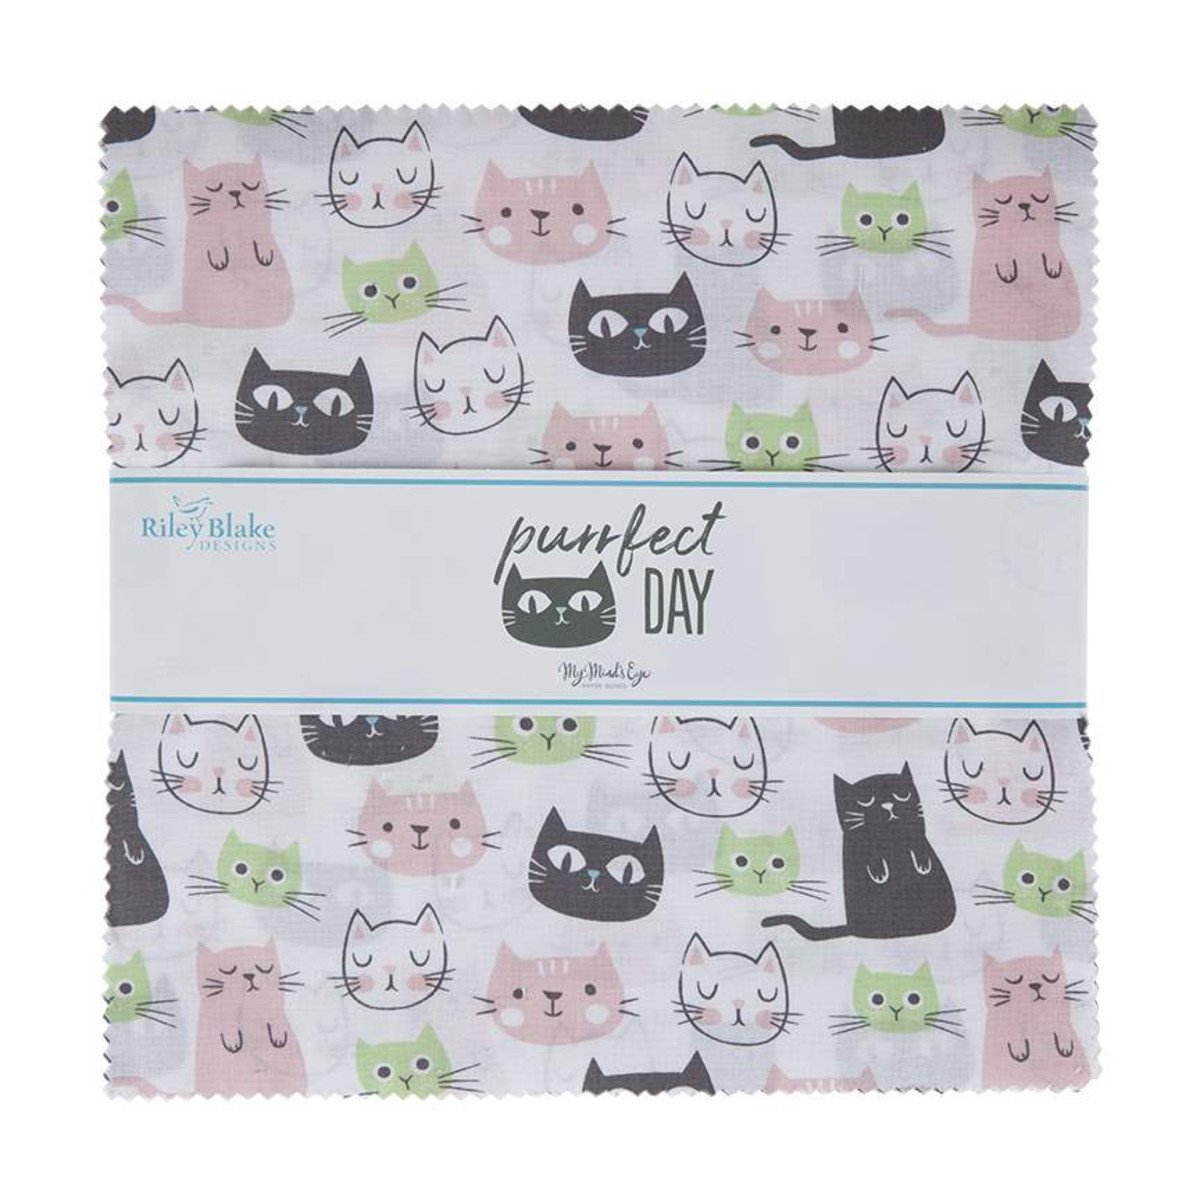 Purrfect Day 10in Squares, 42pcs